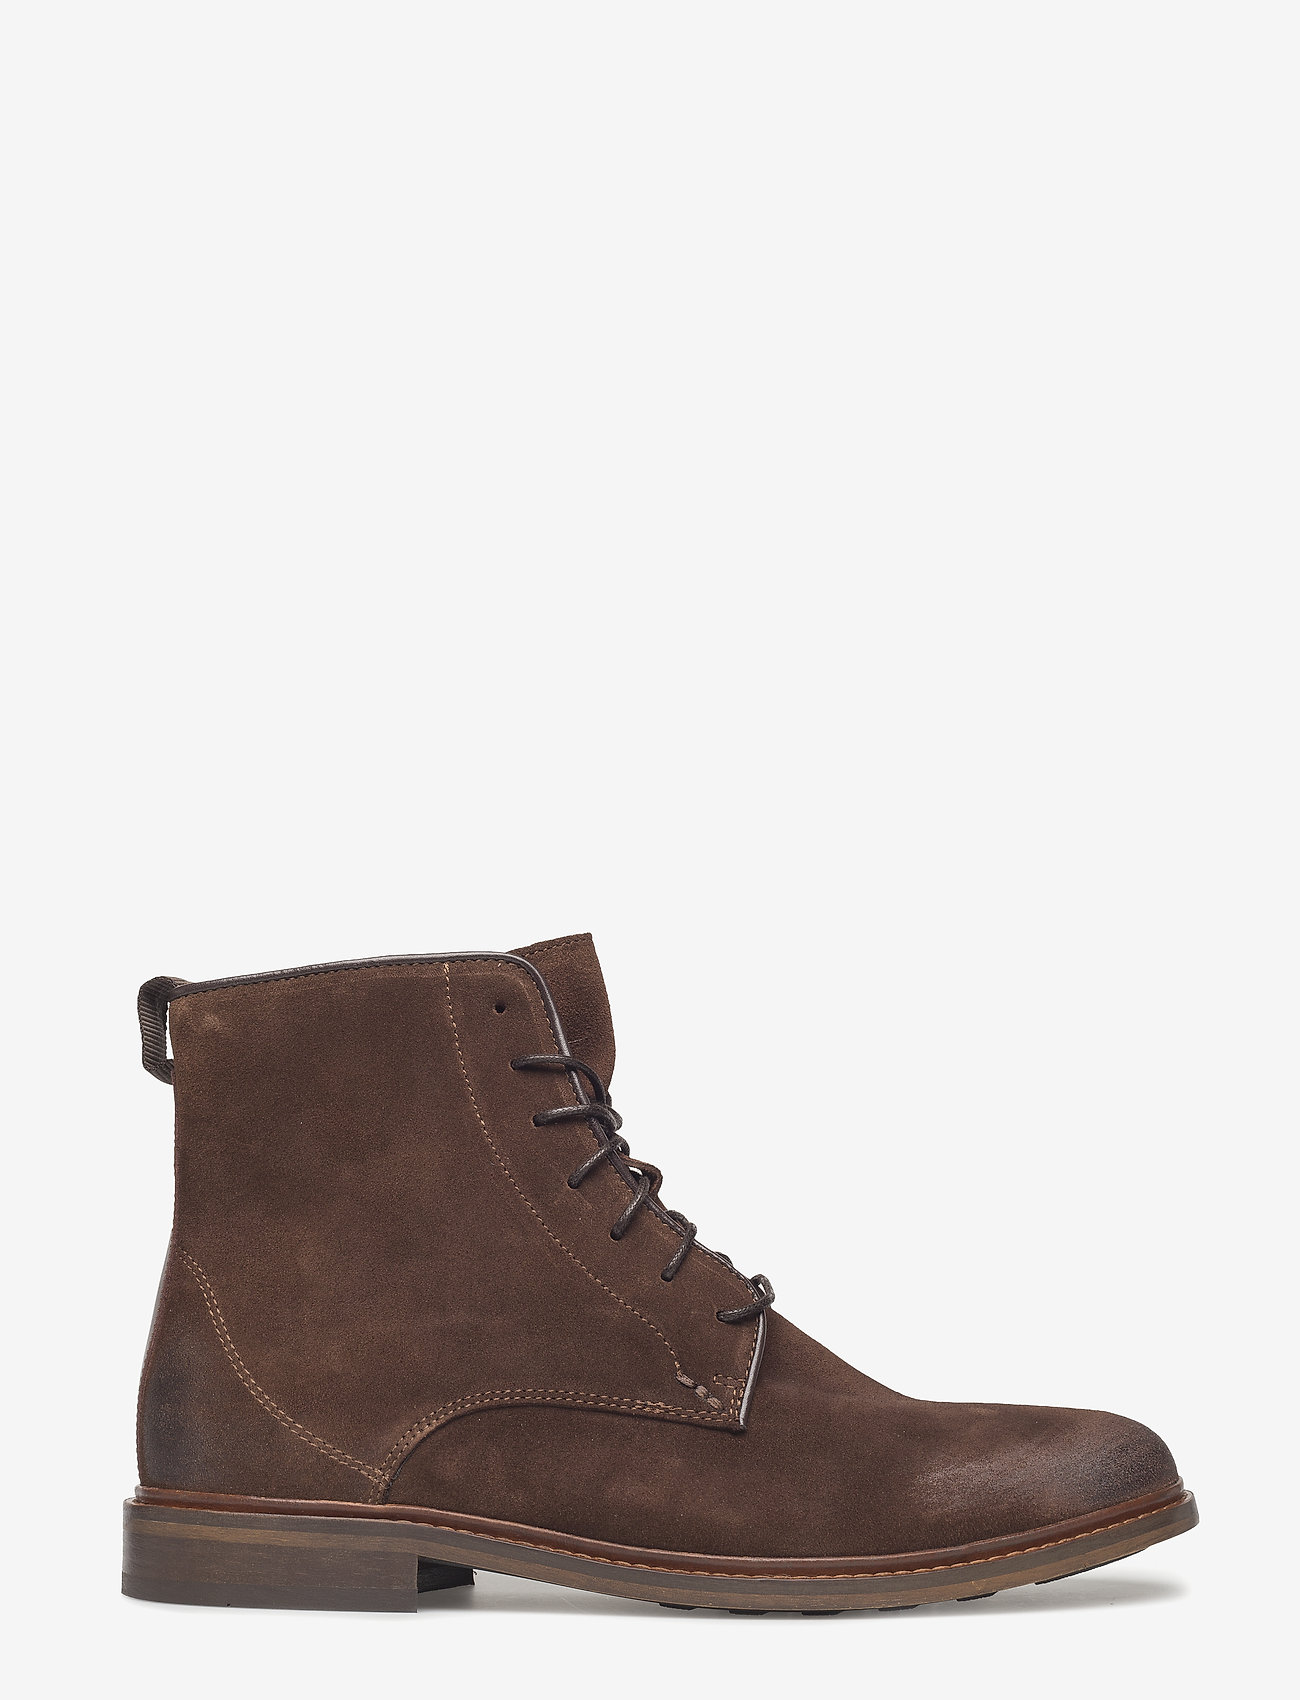 Shoe The Bear Stb-ned S - Boots